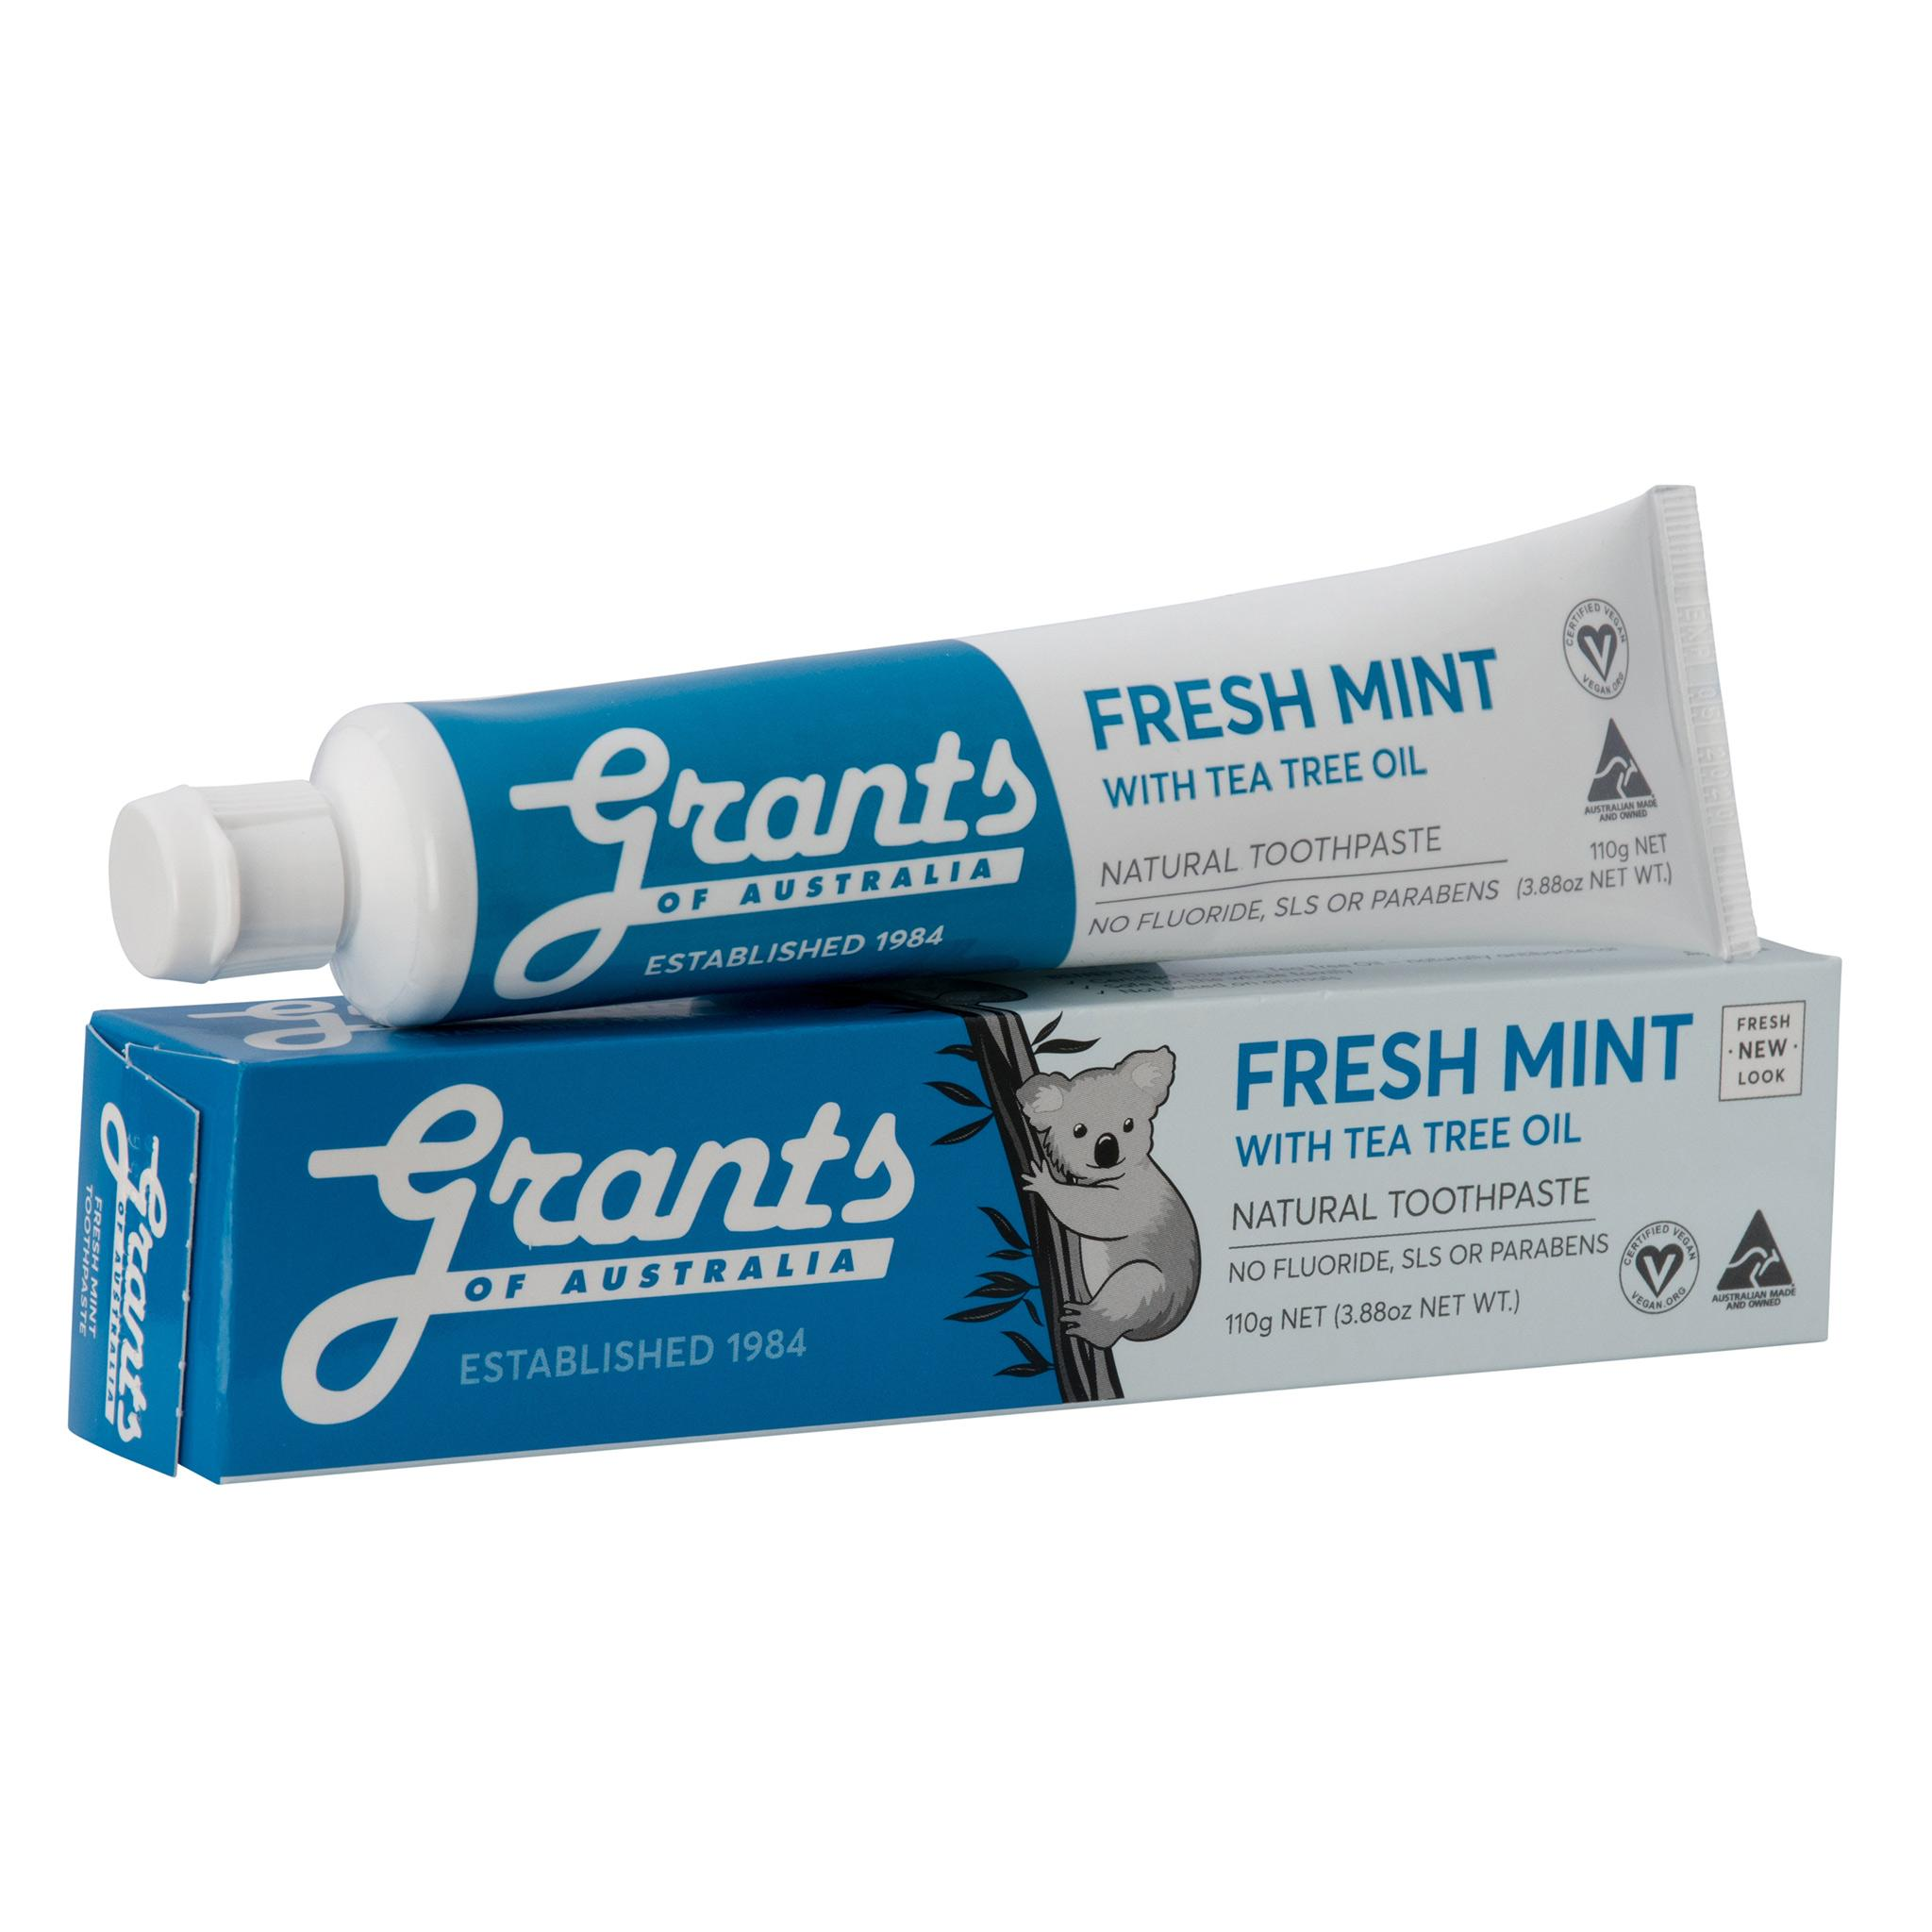 Grants Extra Fresh Toothpaste with Tea Tree Oil 110g